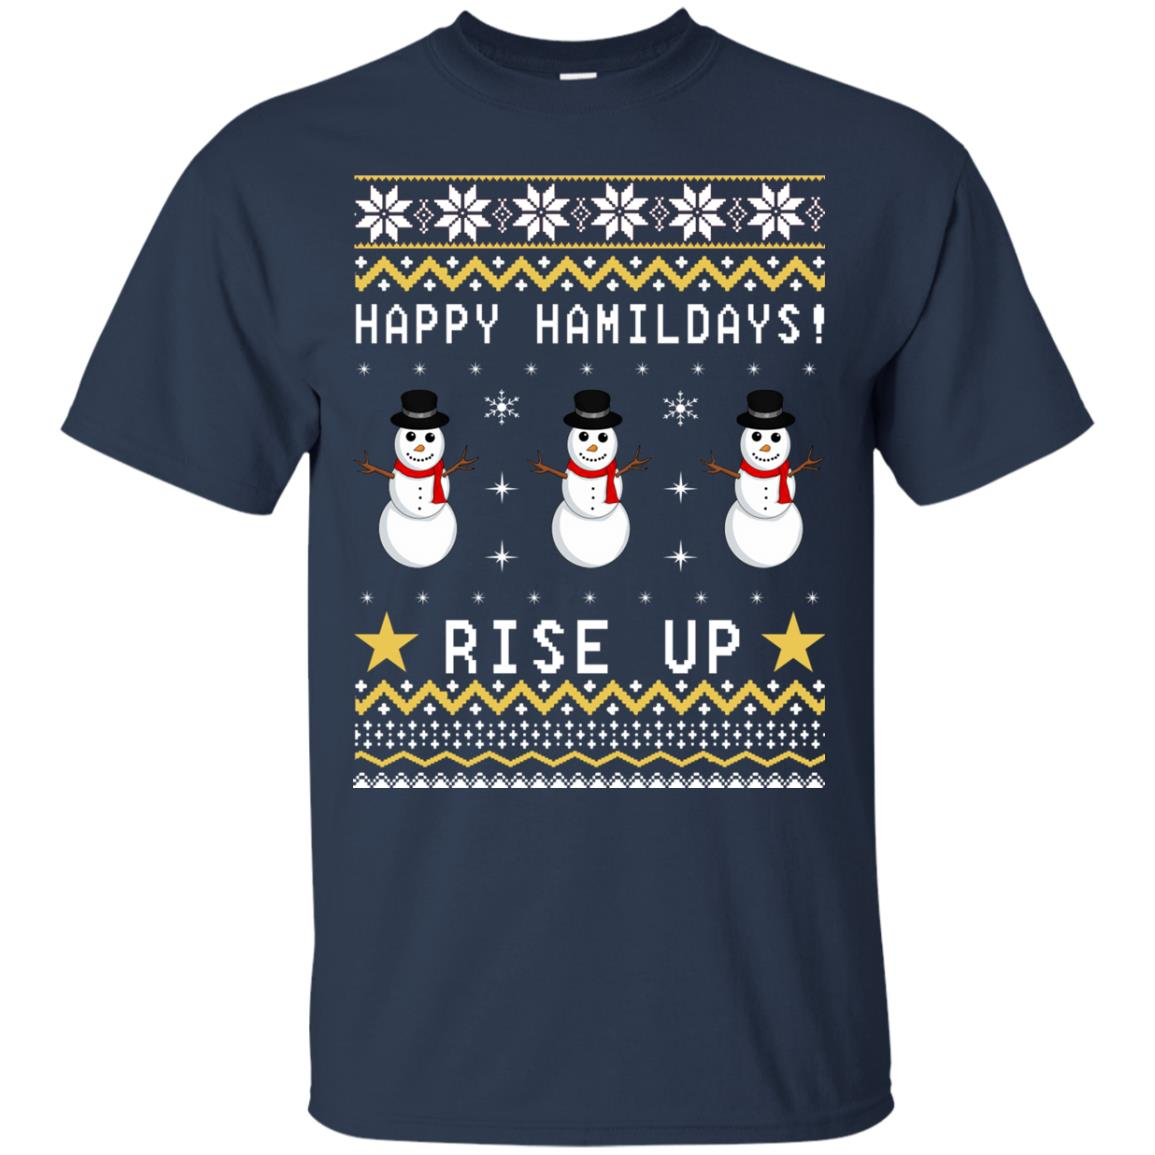 Happy Hamildays Rise Up Christmas Ugly Sweater, Shirt - image 3390